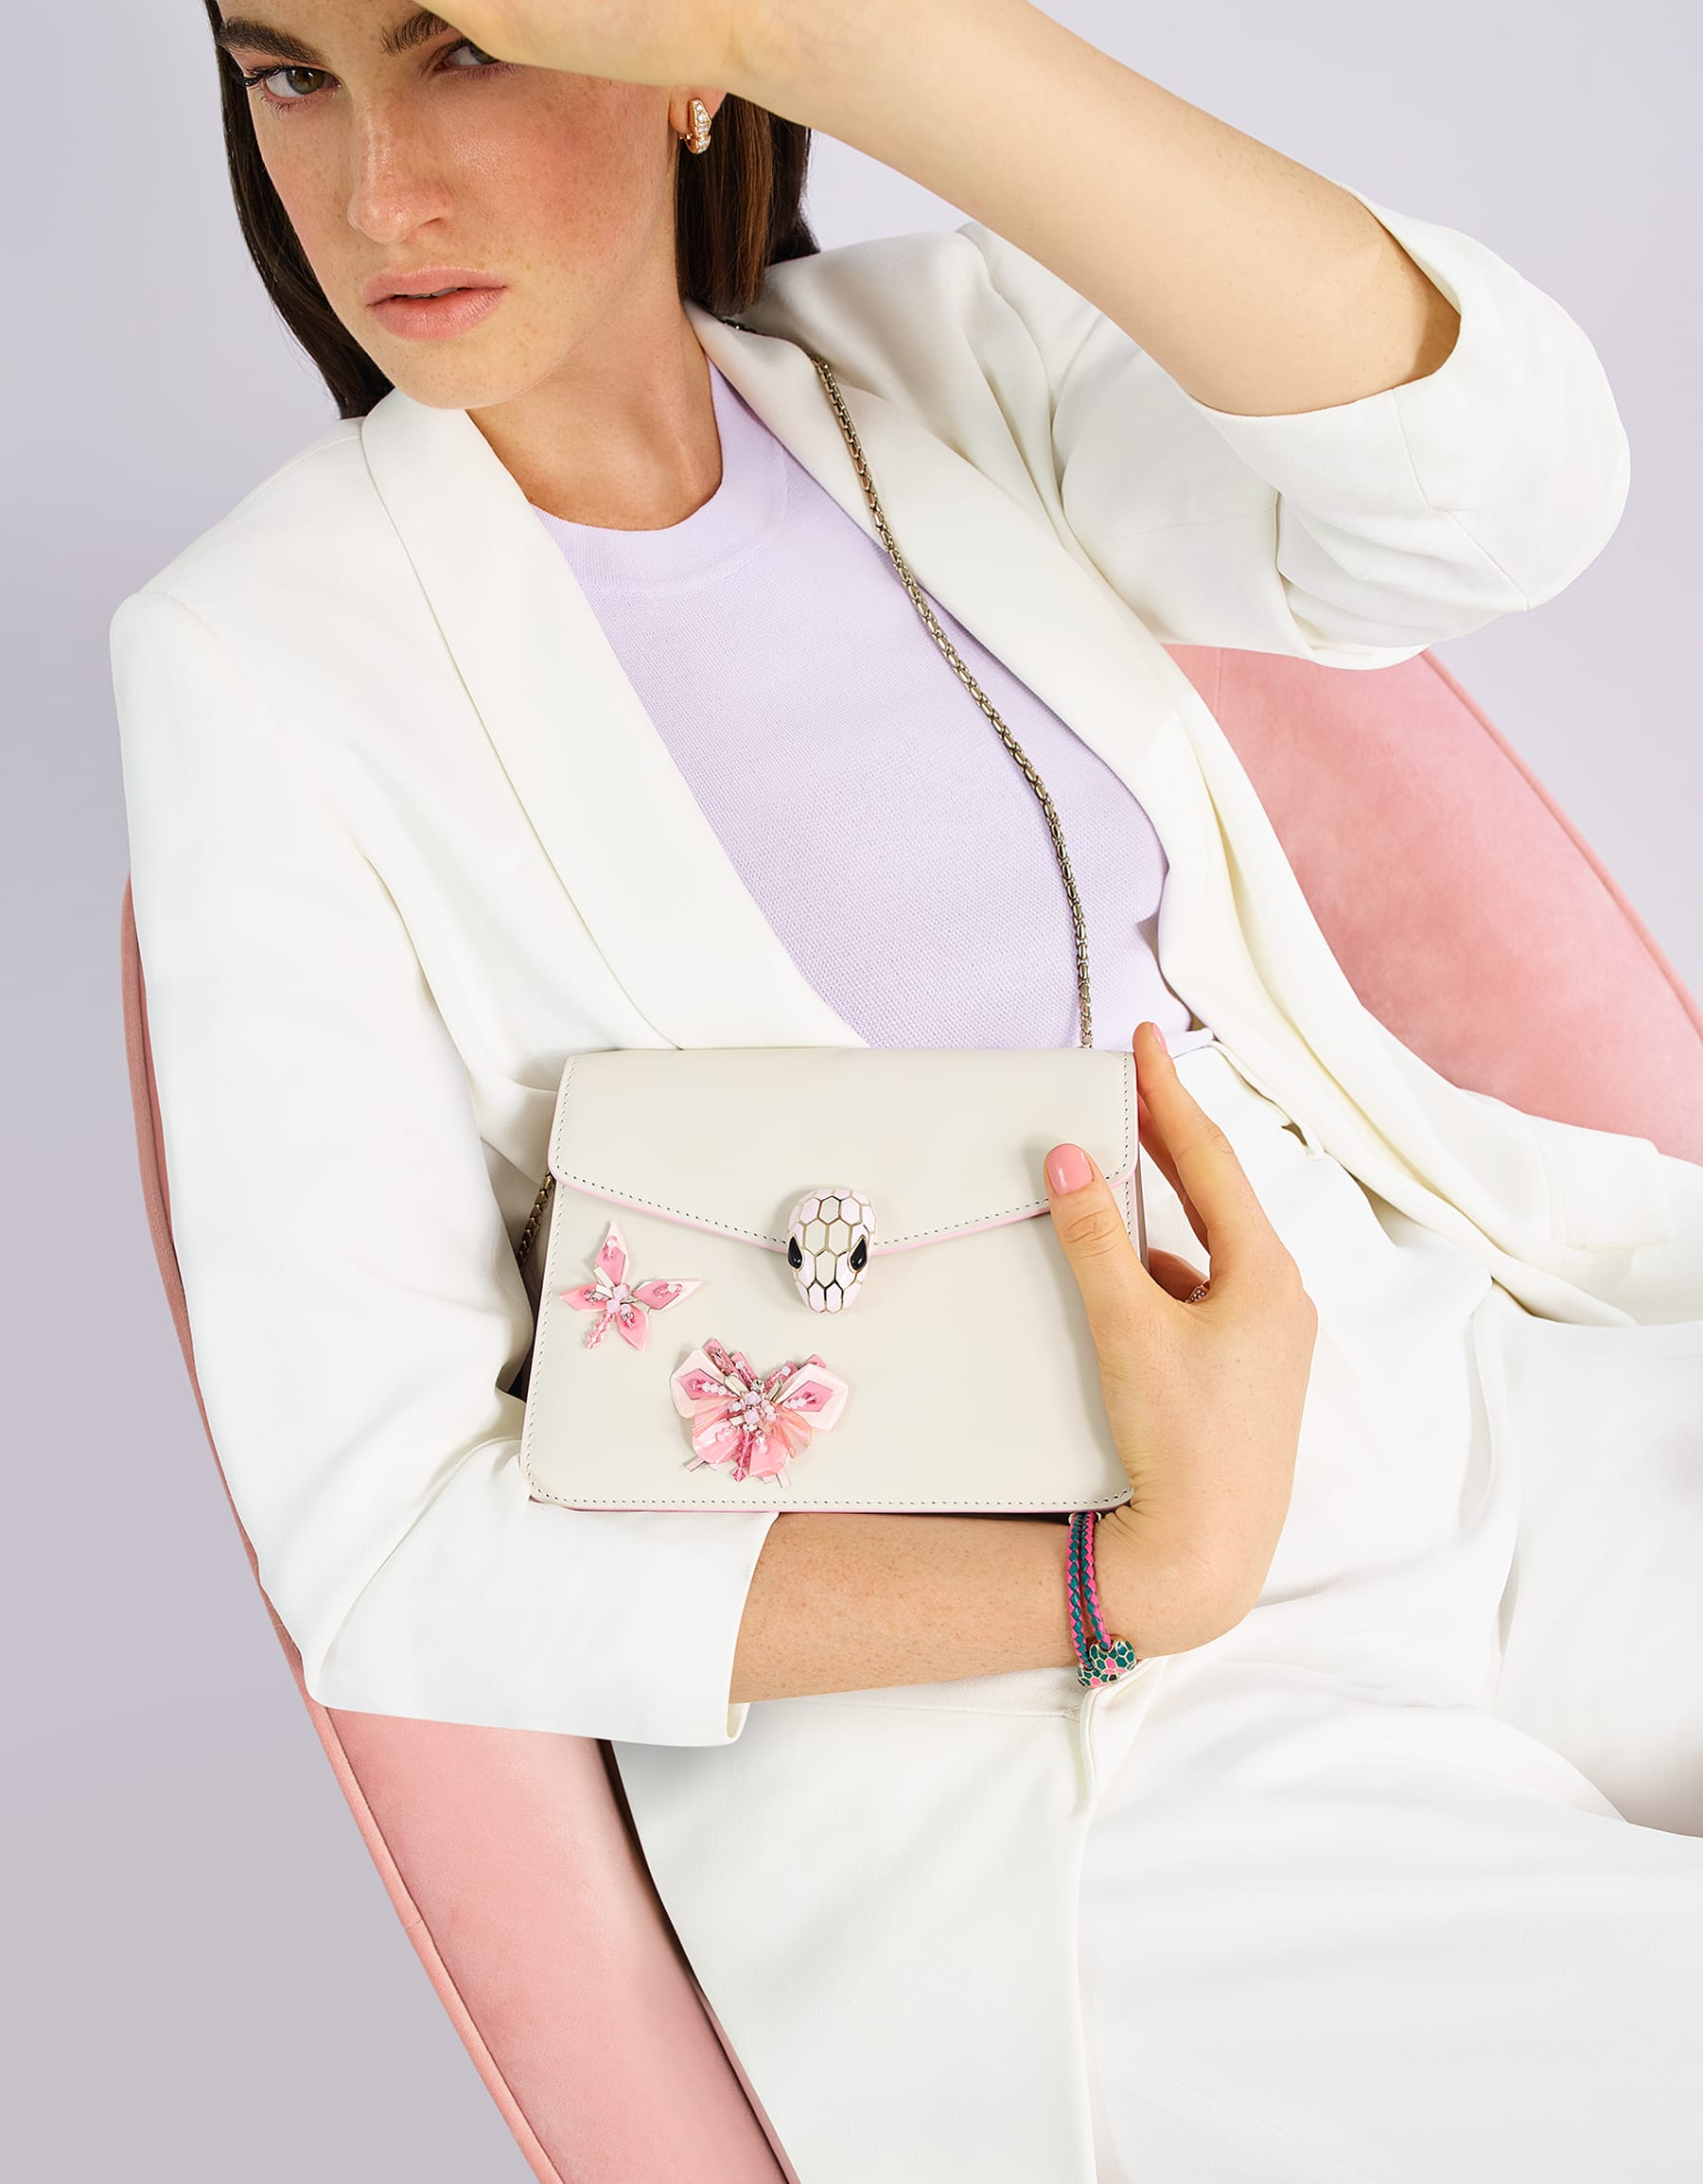 """Serpenti Forever"" crossbody bag in white agate calf leather with two rosa di francia butterflies embroidered. Iconic snakehead closure in light gold plated brass enriched with rosa di francia and white agate enamel and black onyx eyes. 289243 image 2"